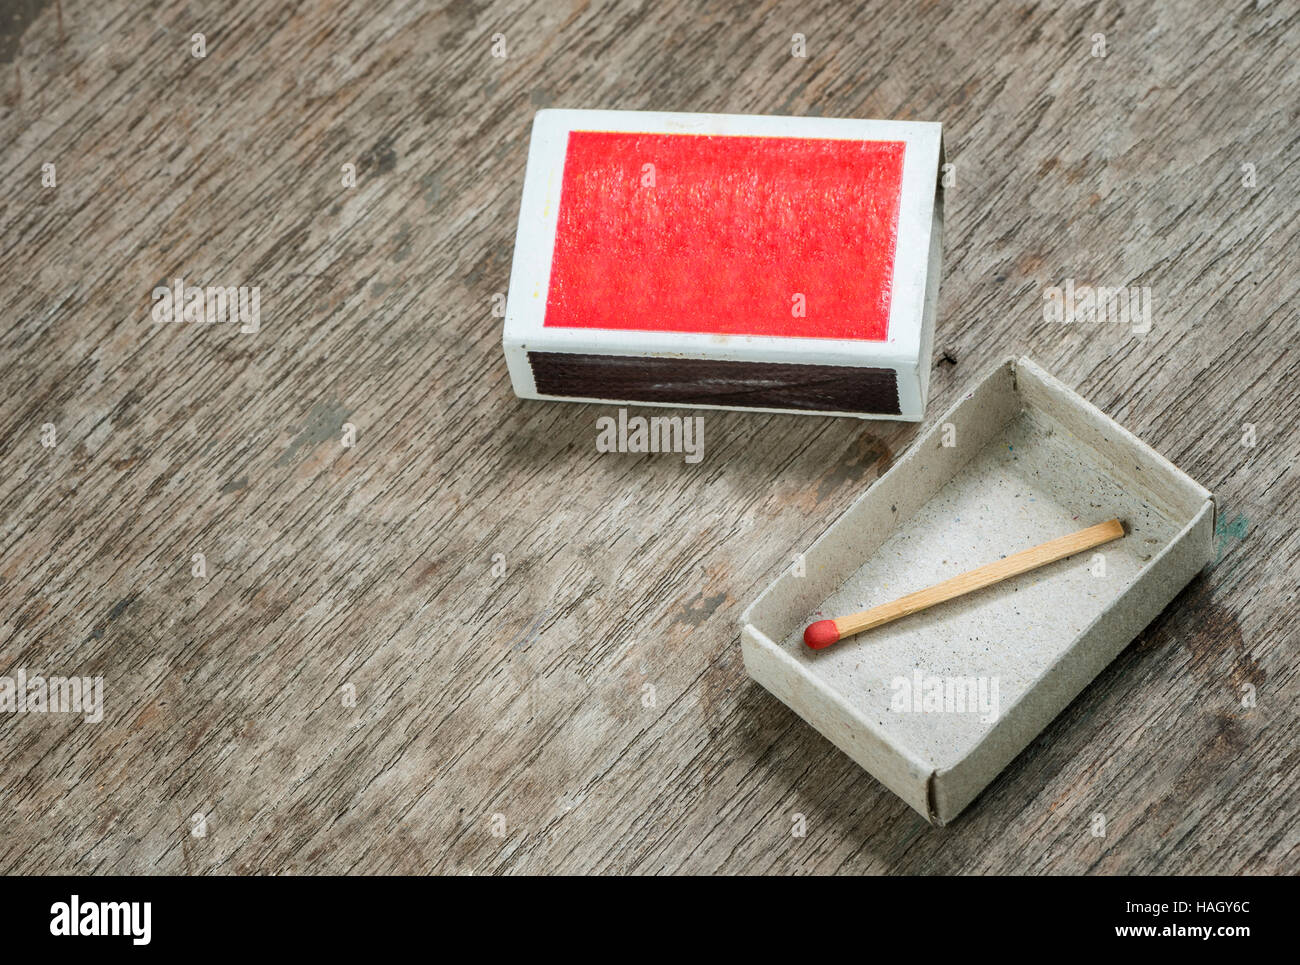 one match in the box on wooden background. - Stock Image